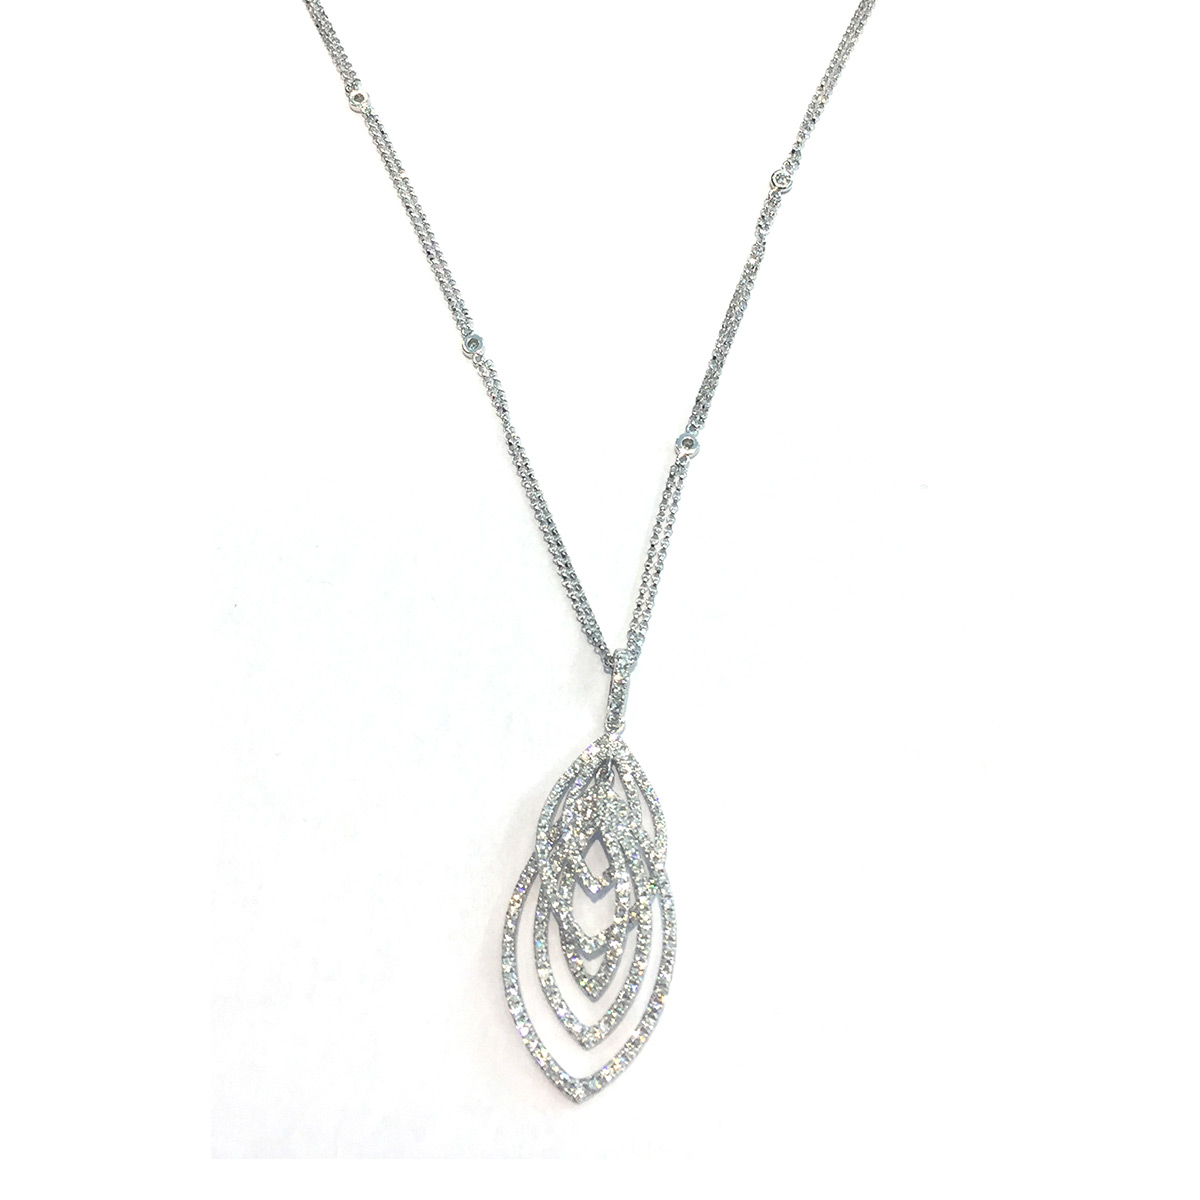 Collier or 750 blanc diamant 46 cm - vue 1